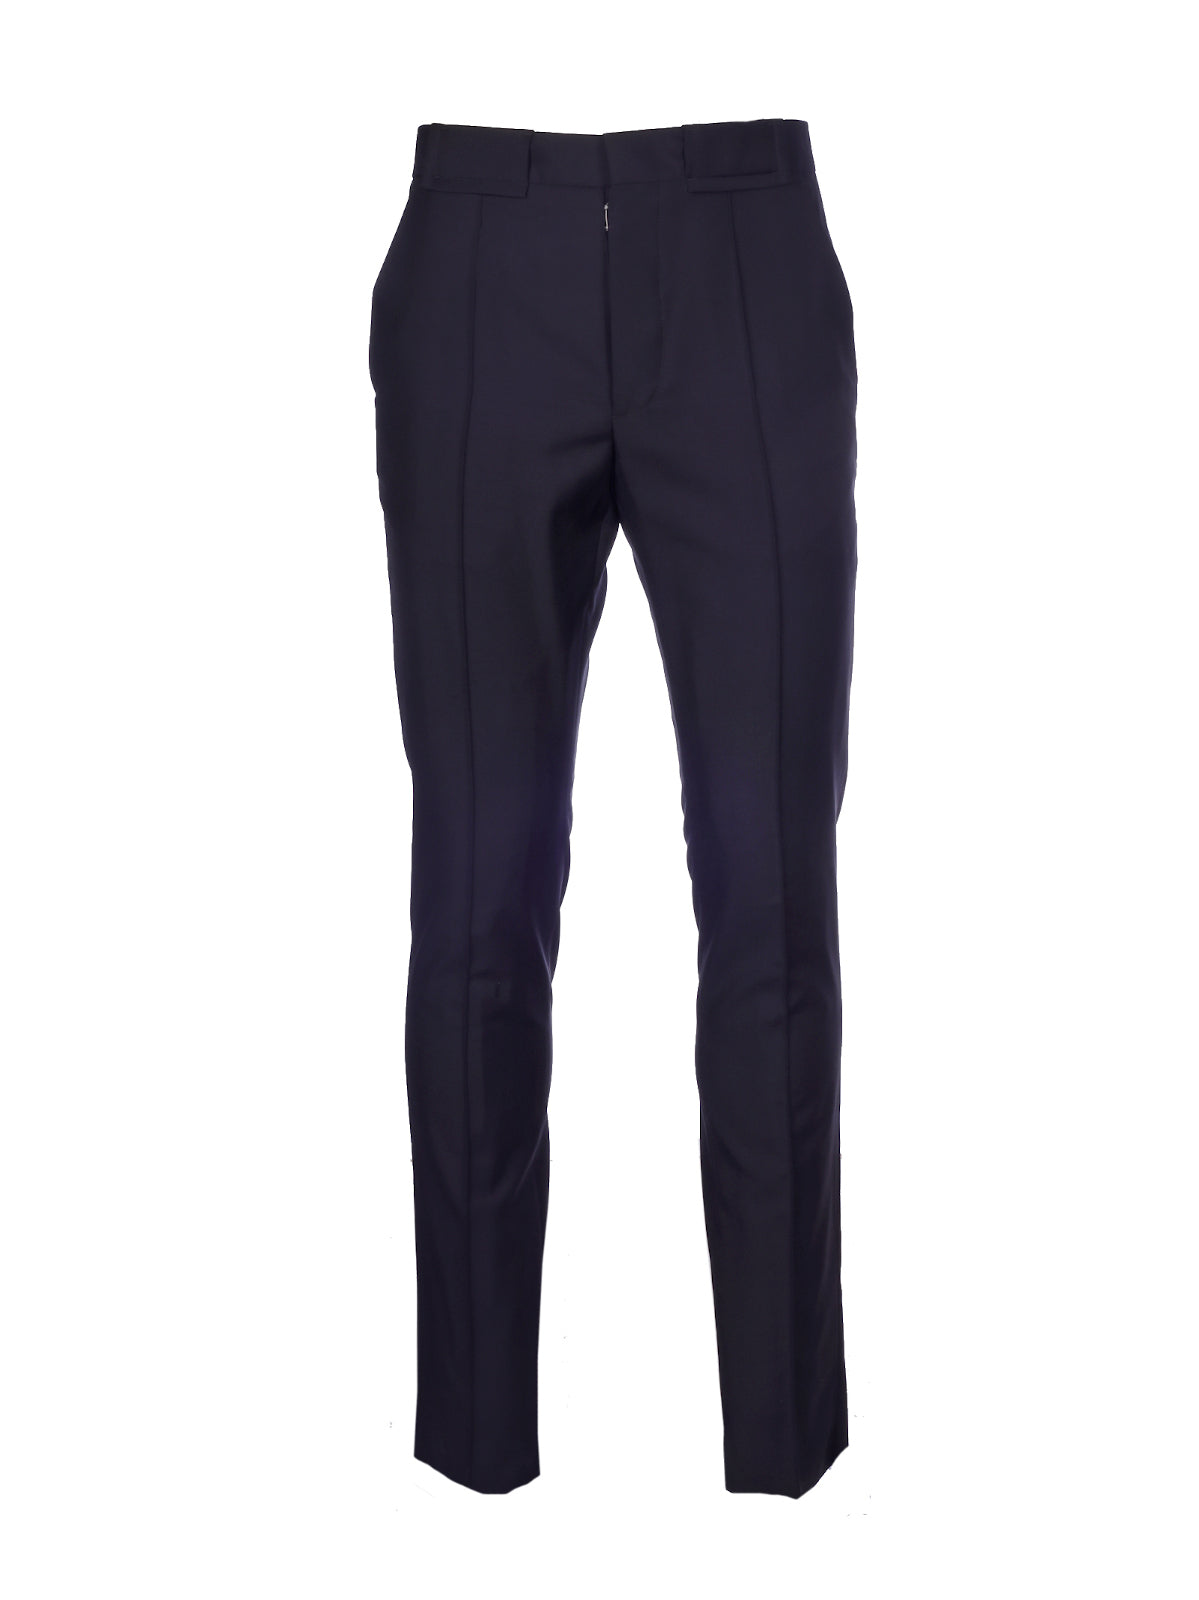 PANTALONE SLIM IN LANA